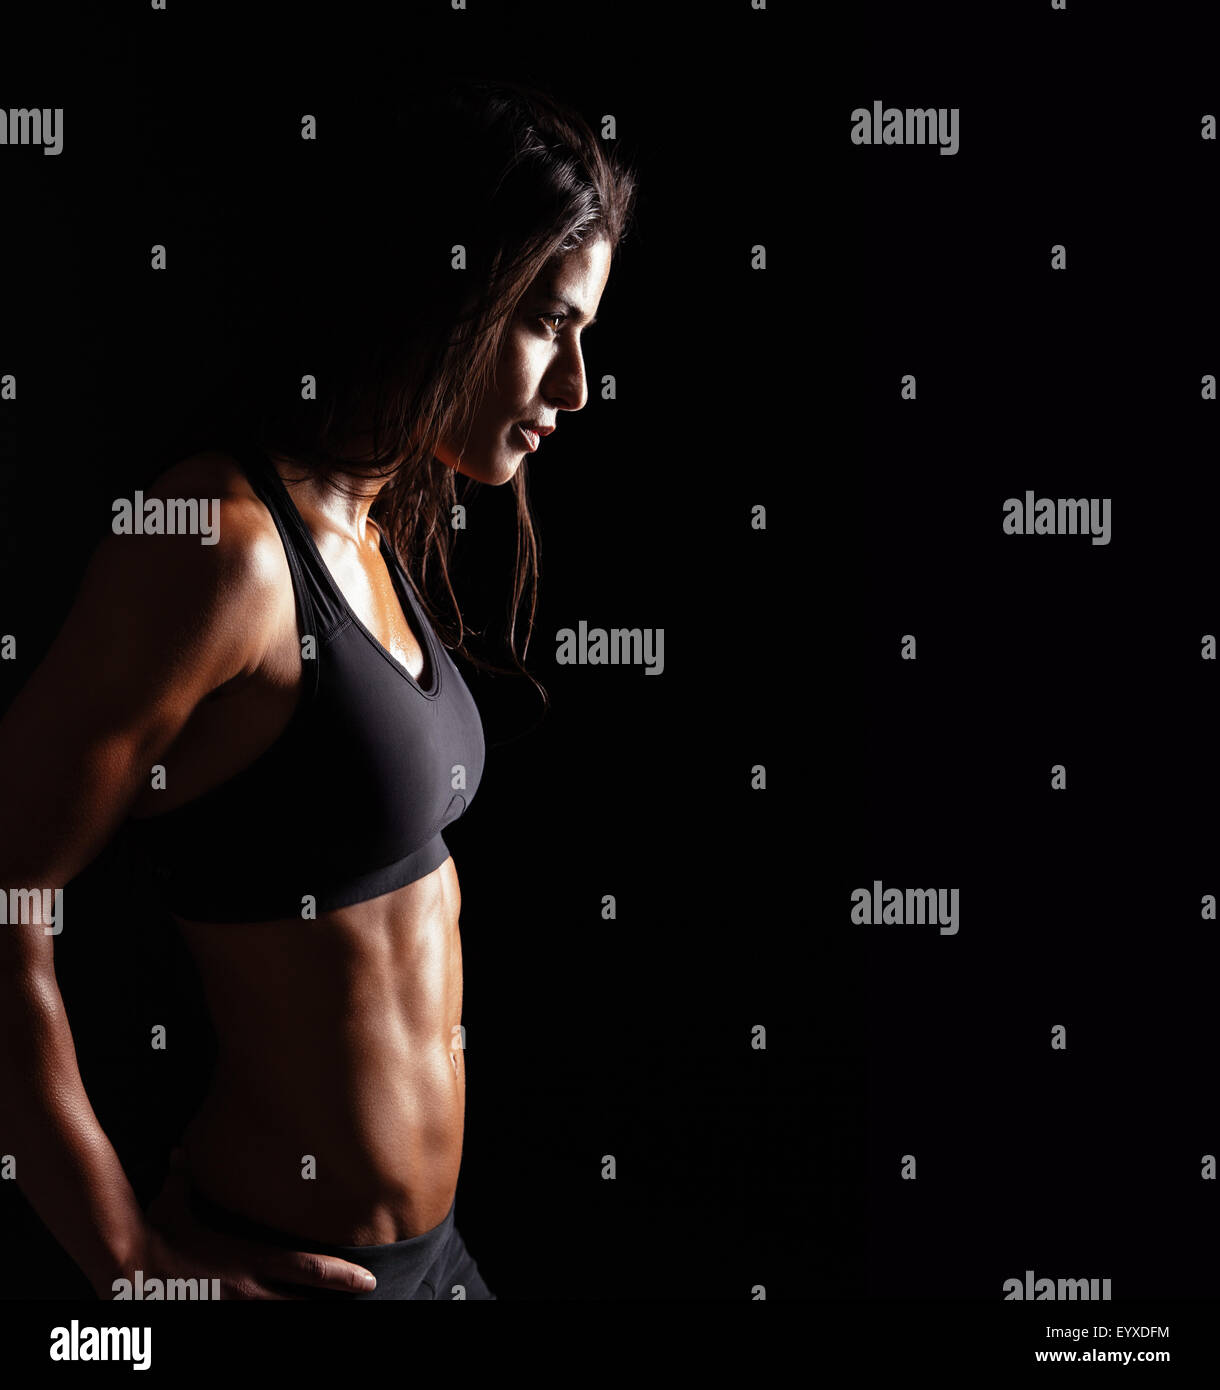 Image of fitness woman in sports clothing looking away on black background. Young female with perfect muscular body. - Stock Image